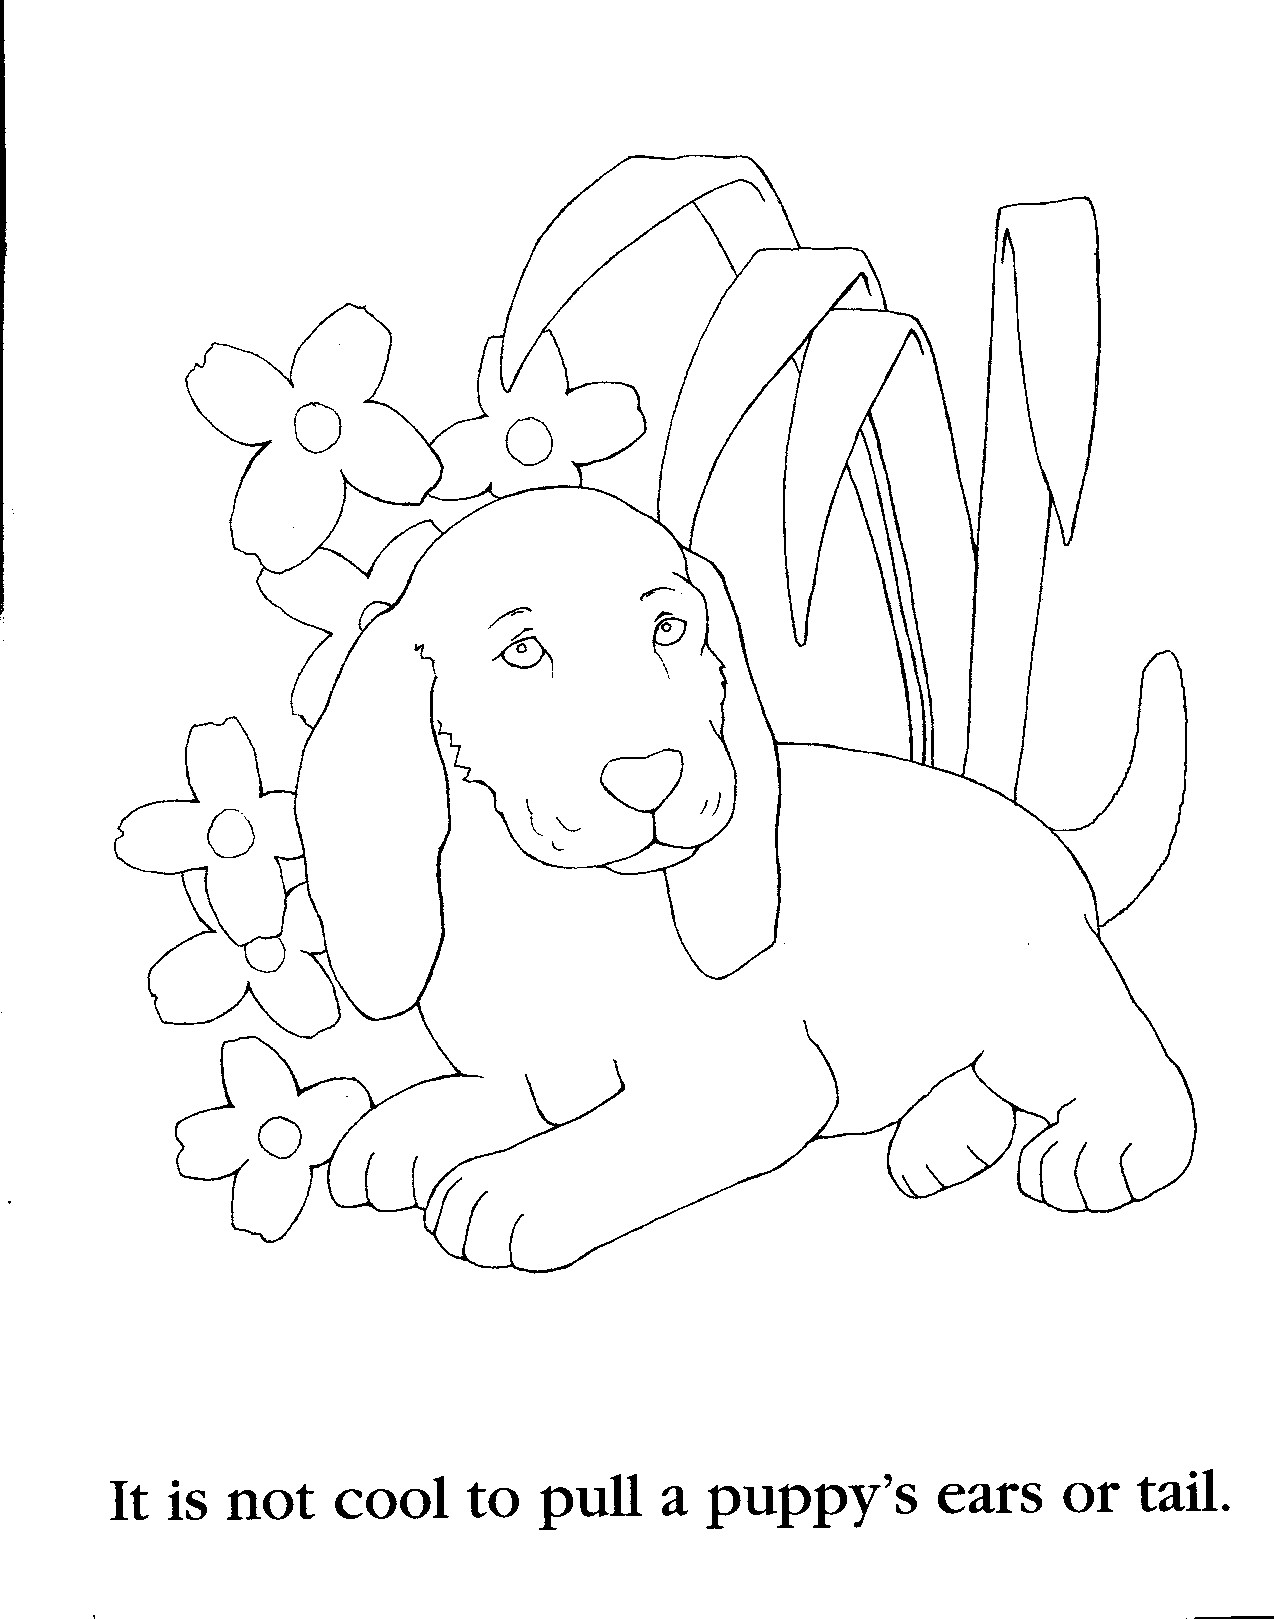 coloring pages 9 year old coloring pages for 9 year olds free download on clipartmag pages old coloring year 9